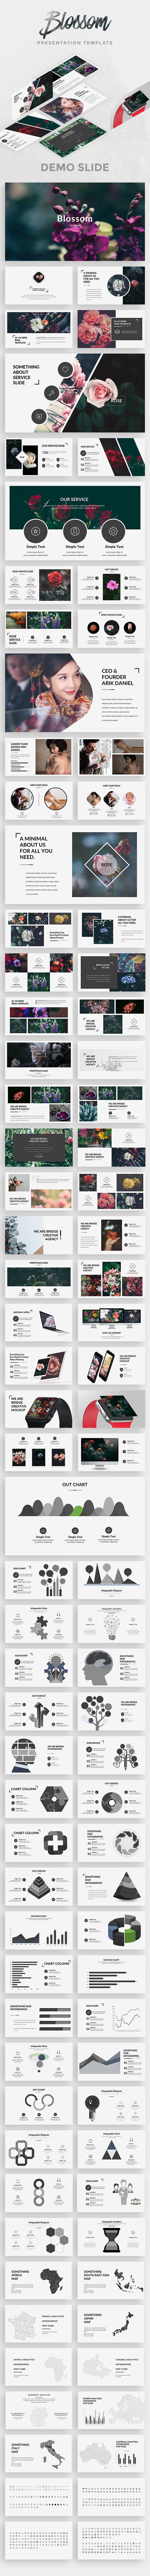 Blossom Creative Powerpoint Template - Creative PowerPoint Templates